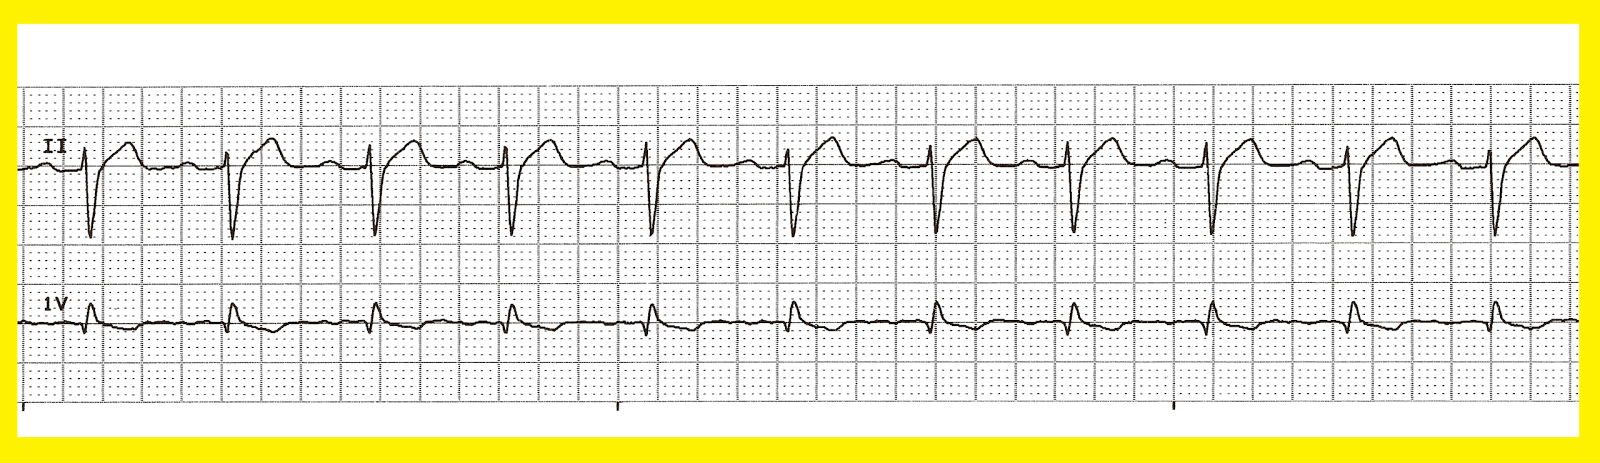 Ekg reading strip